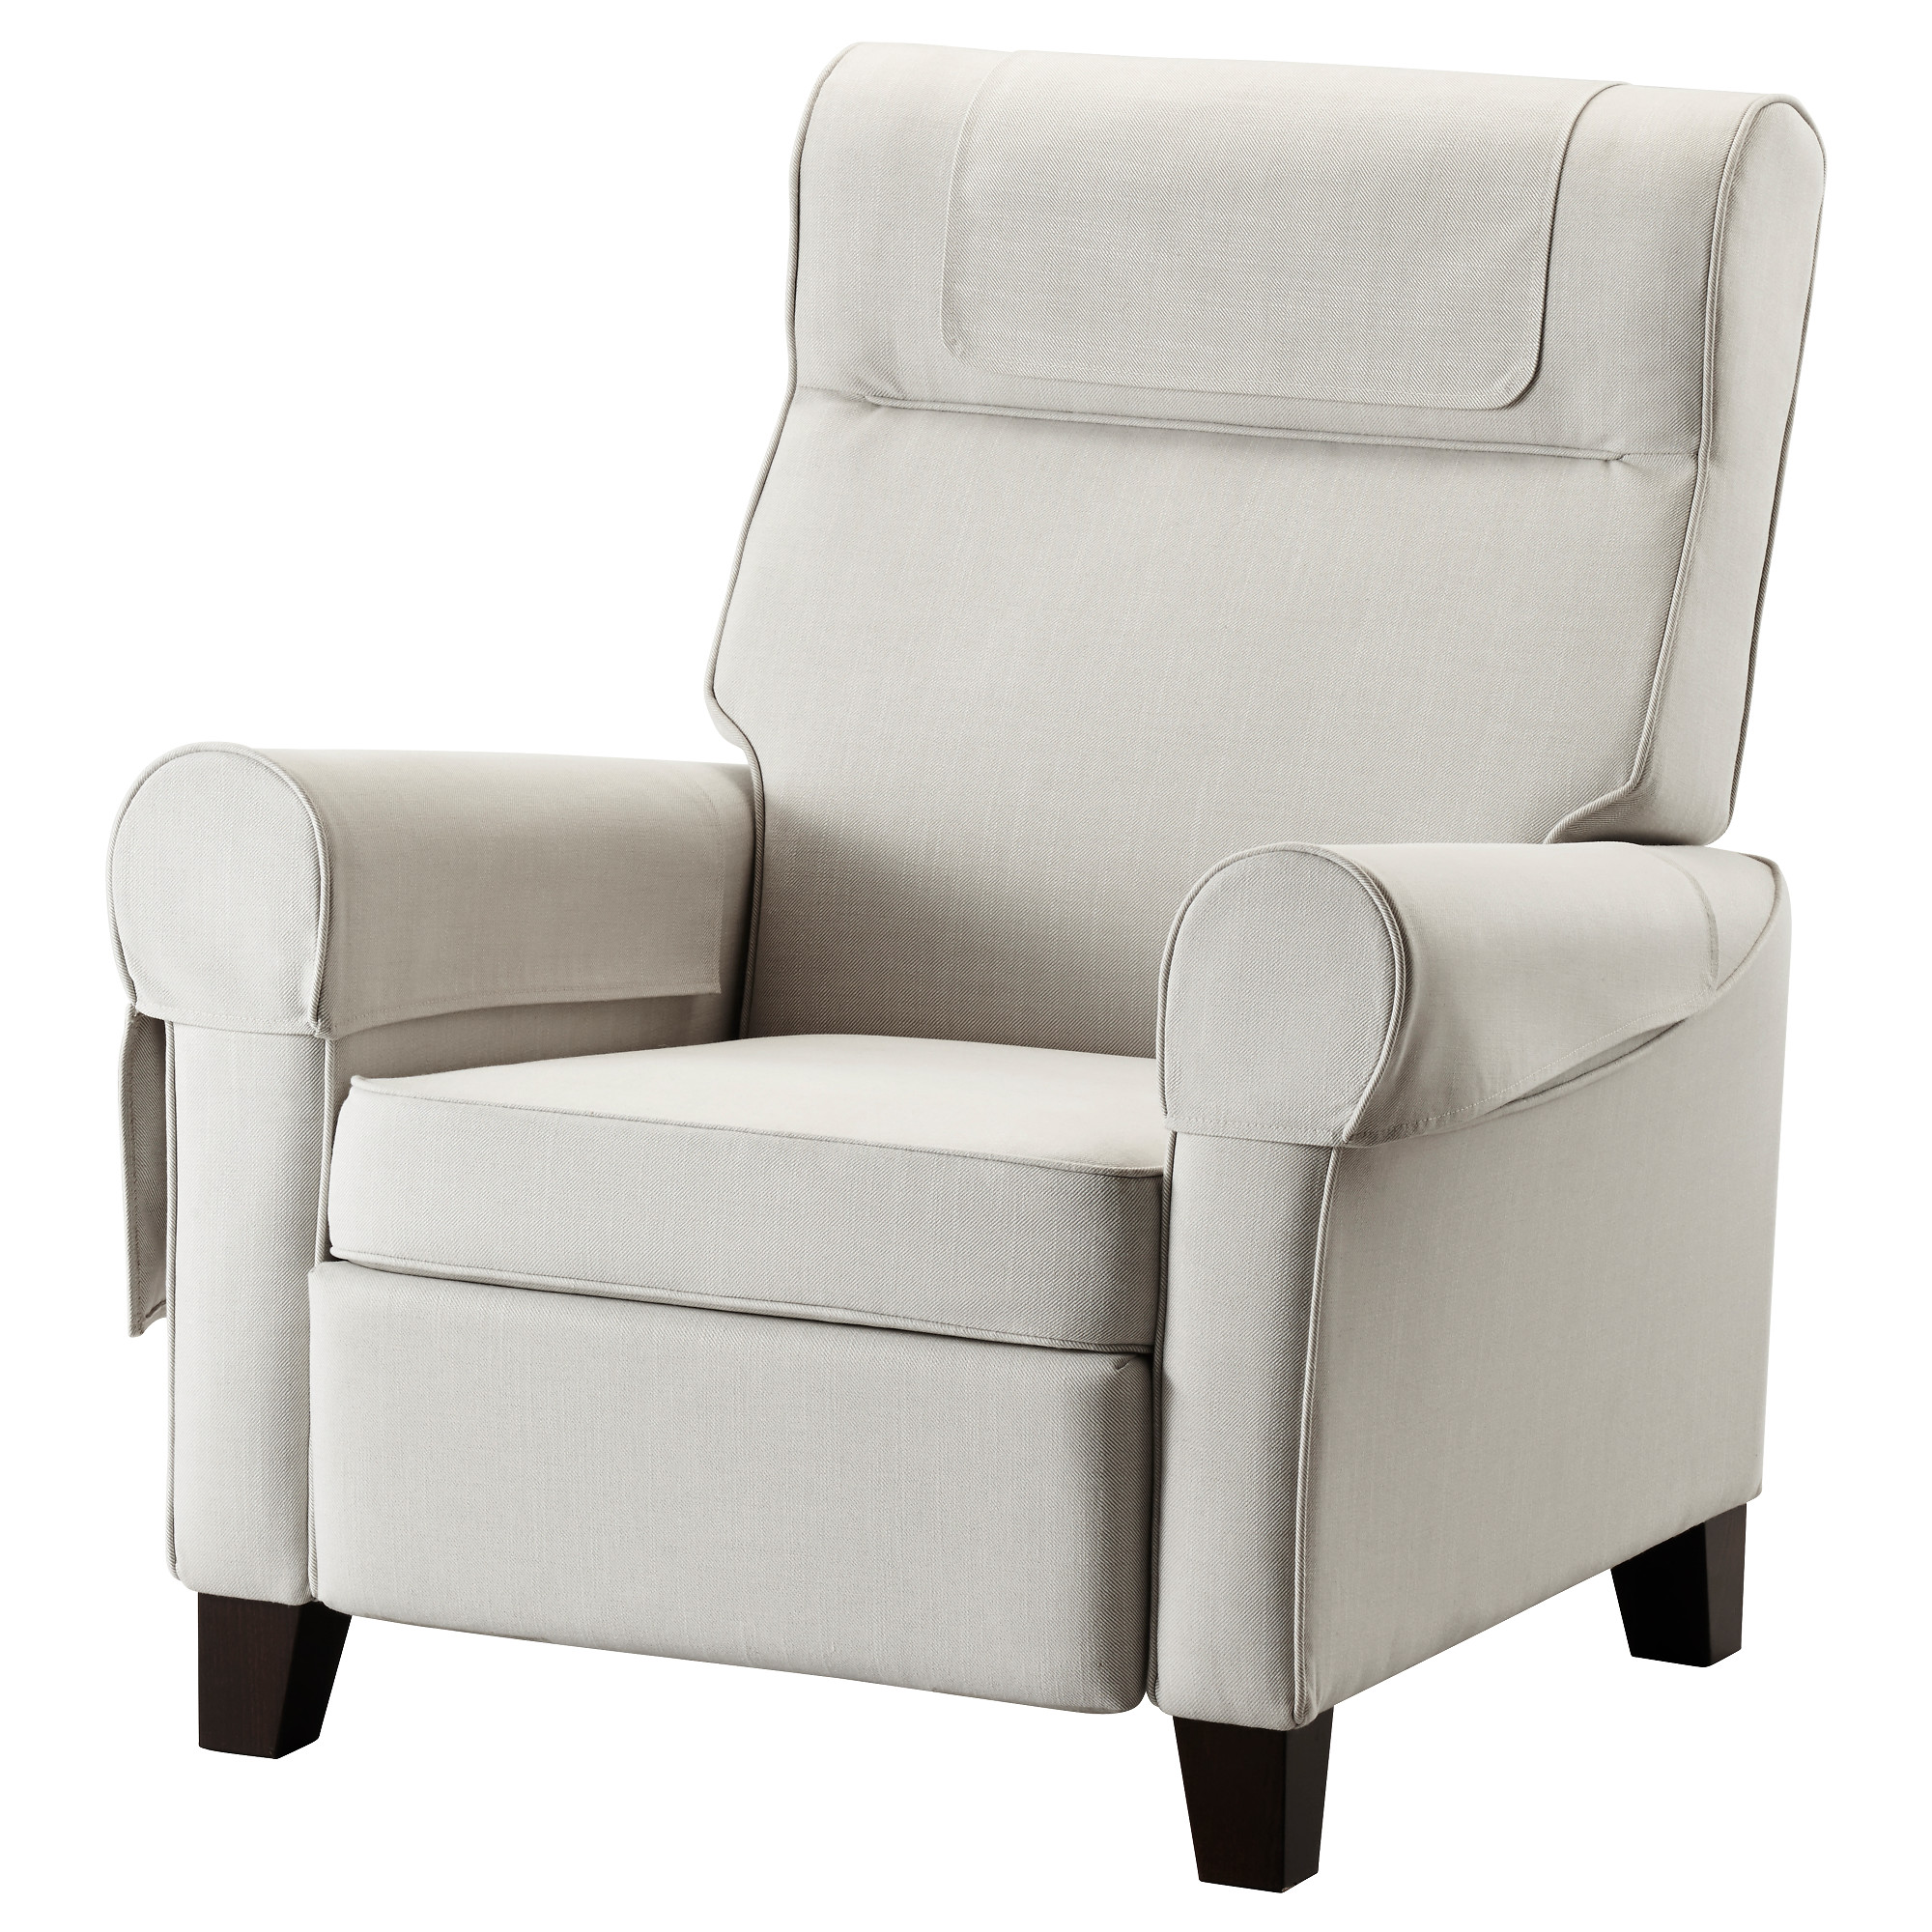 lounge ikea sofa recliner chair awesome ideas of elegant